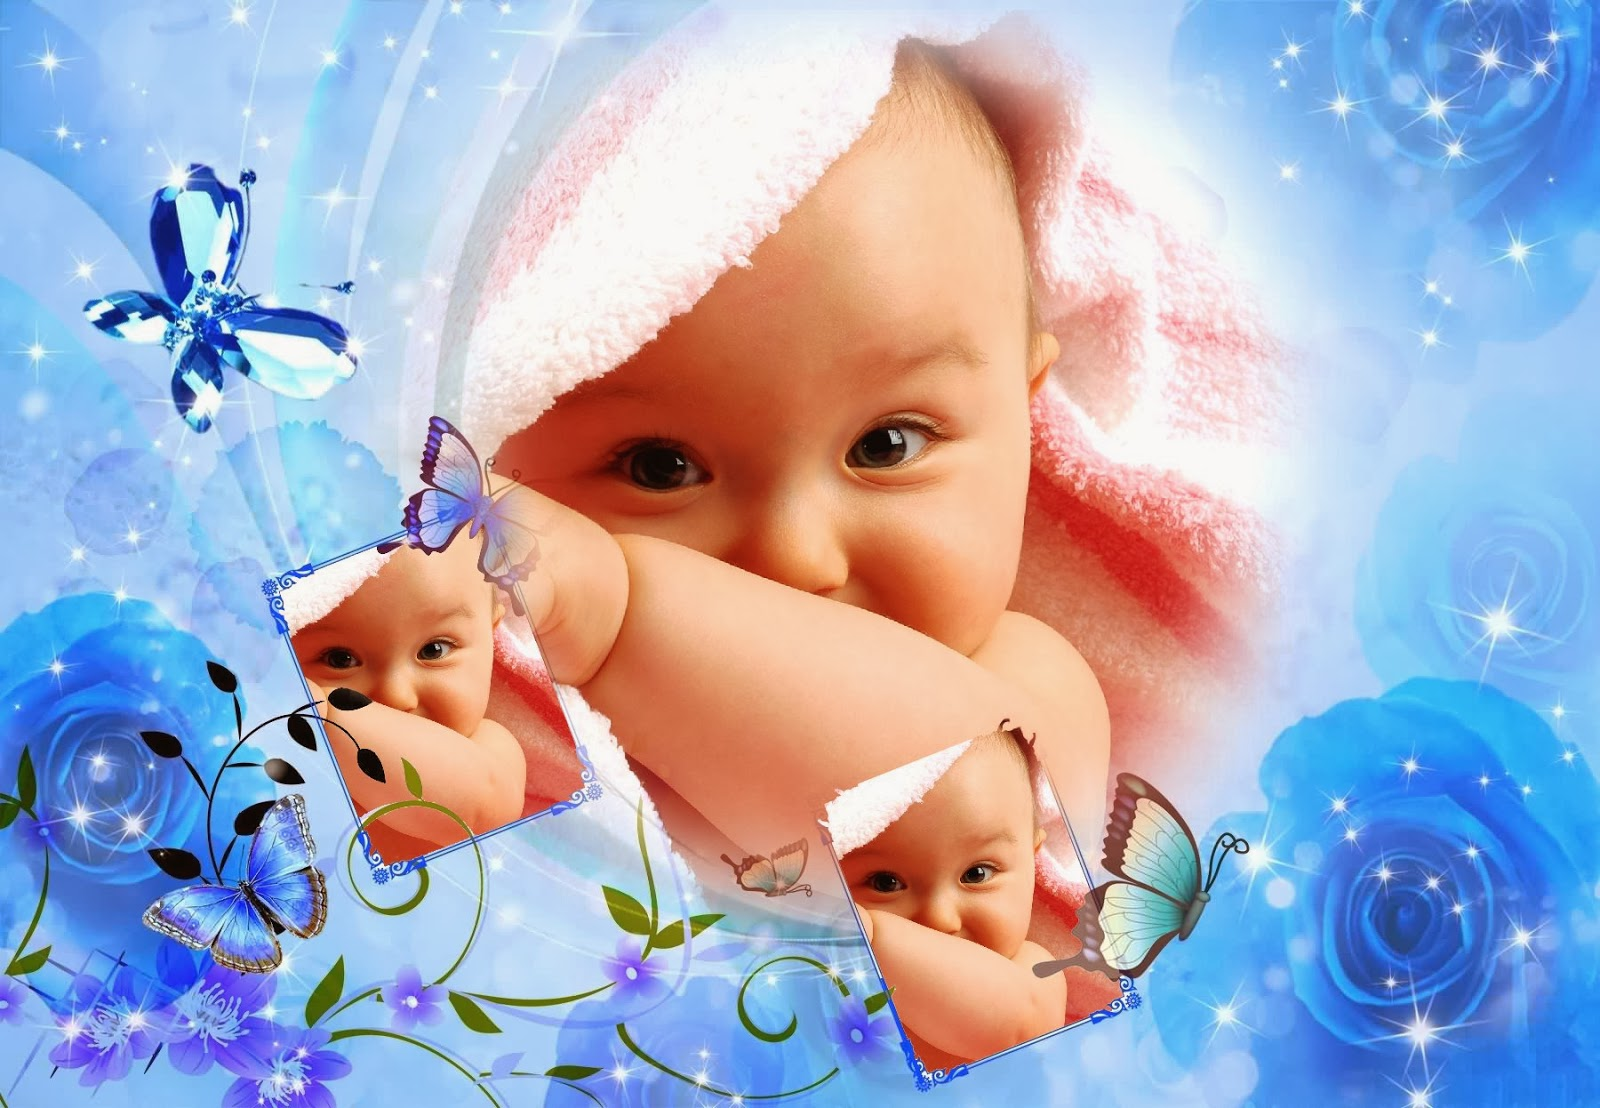 Babies pictures wallpapers